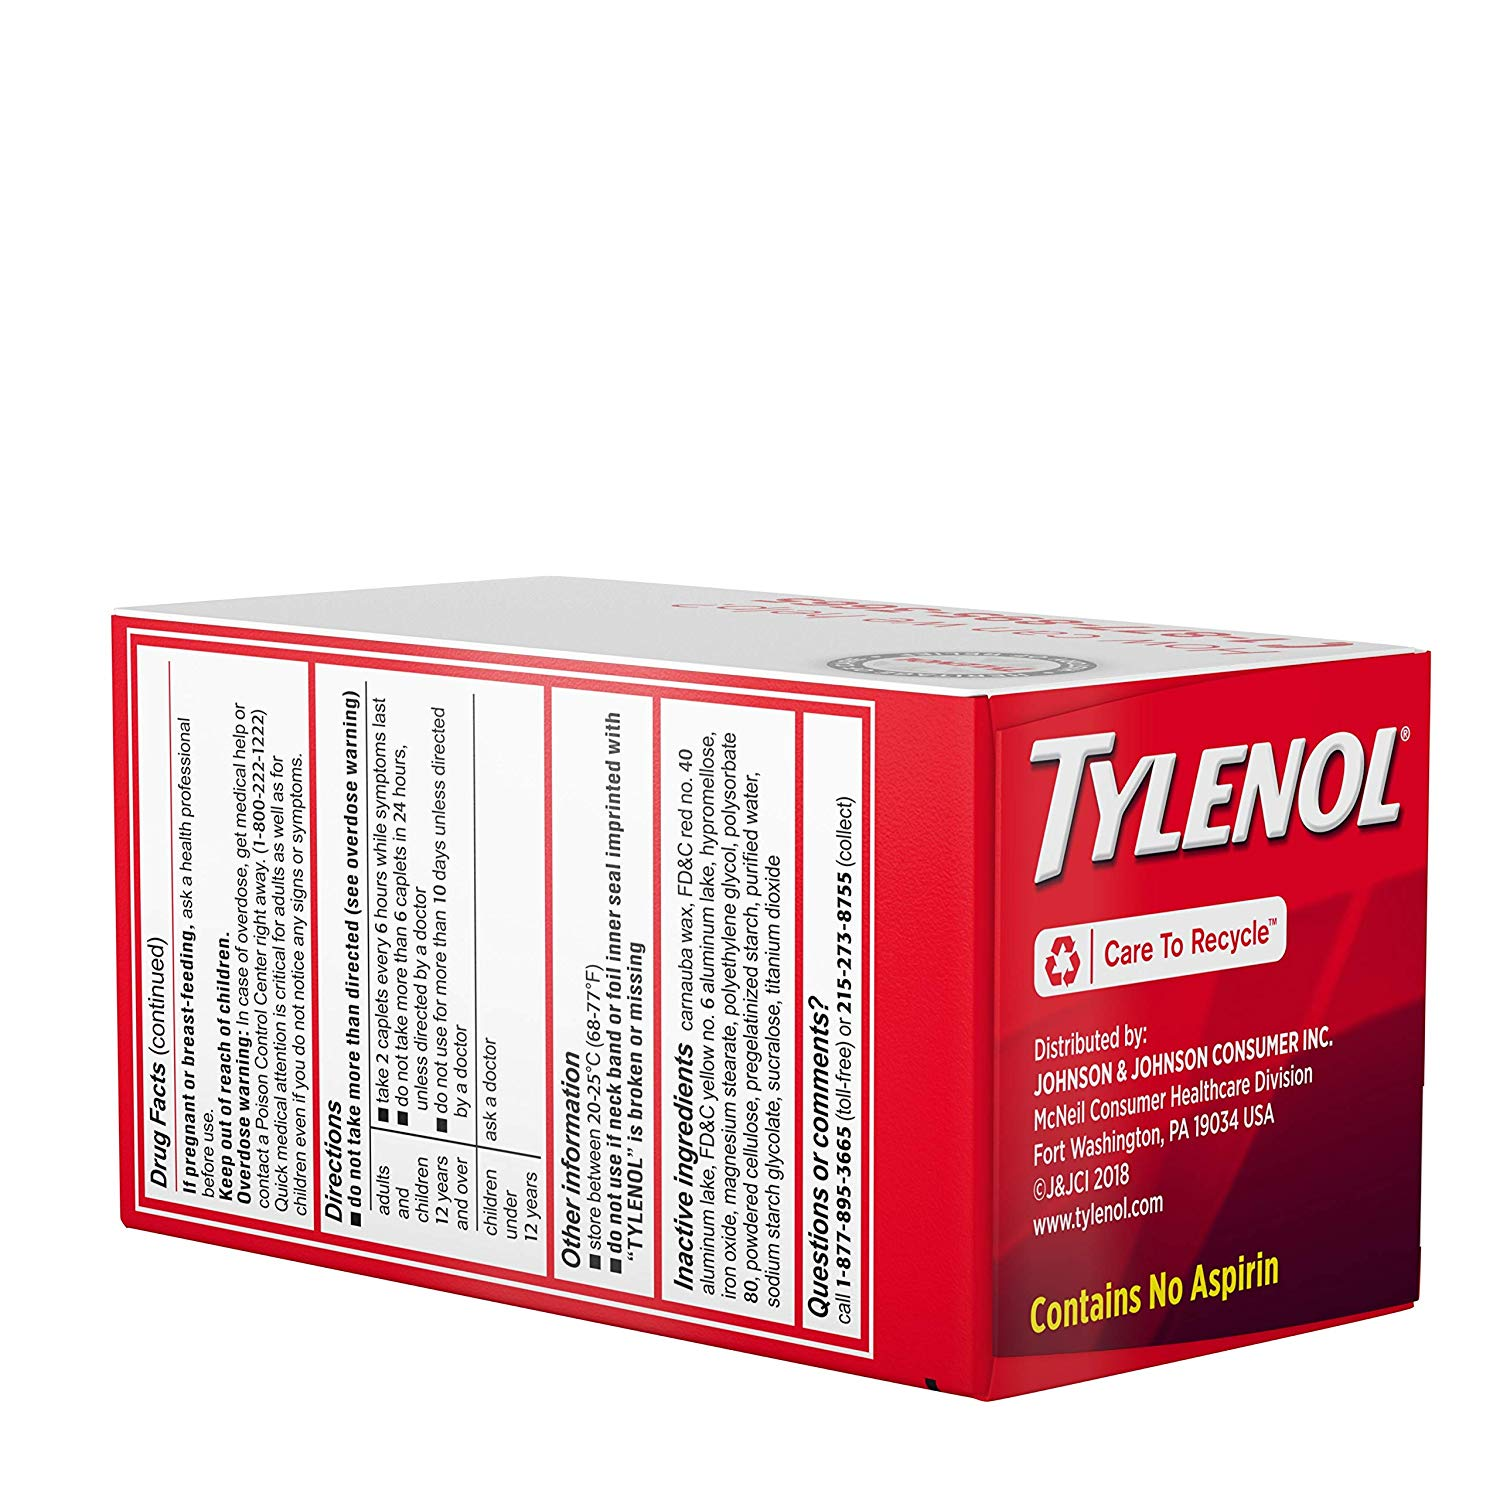 Details about 4 Pack Tylenol Extra Strength 500mg Pain Fever Reducer, 100  Tablets Each